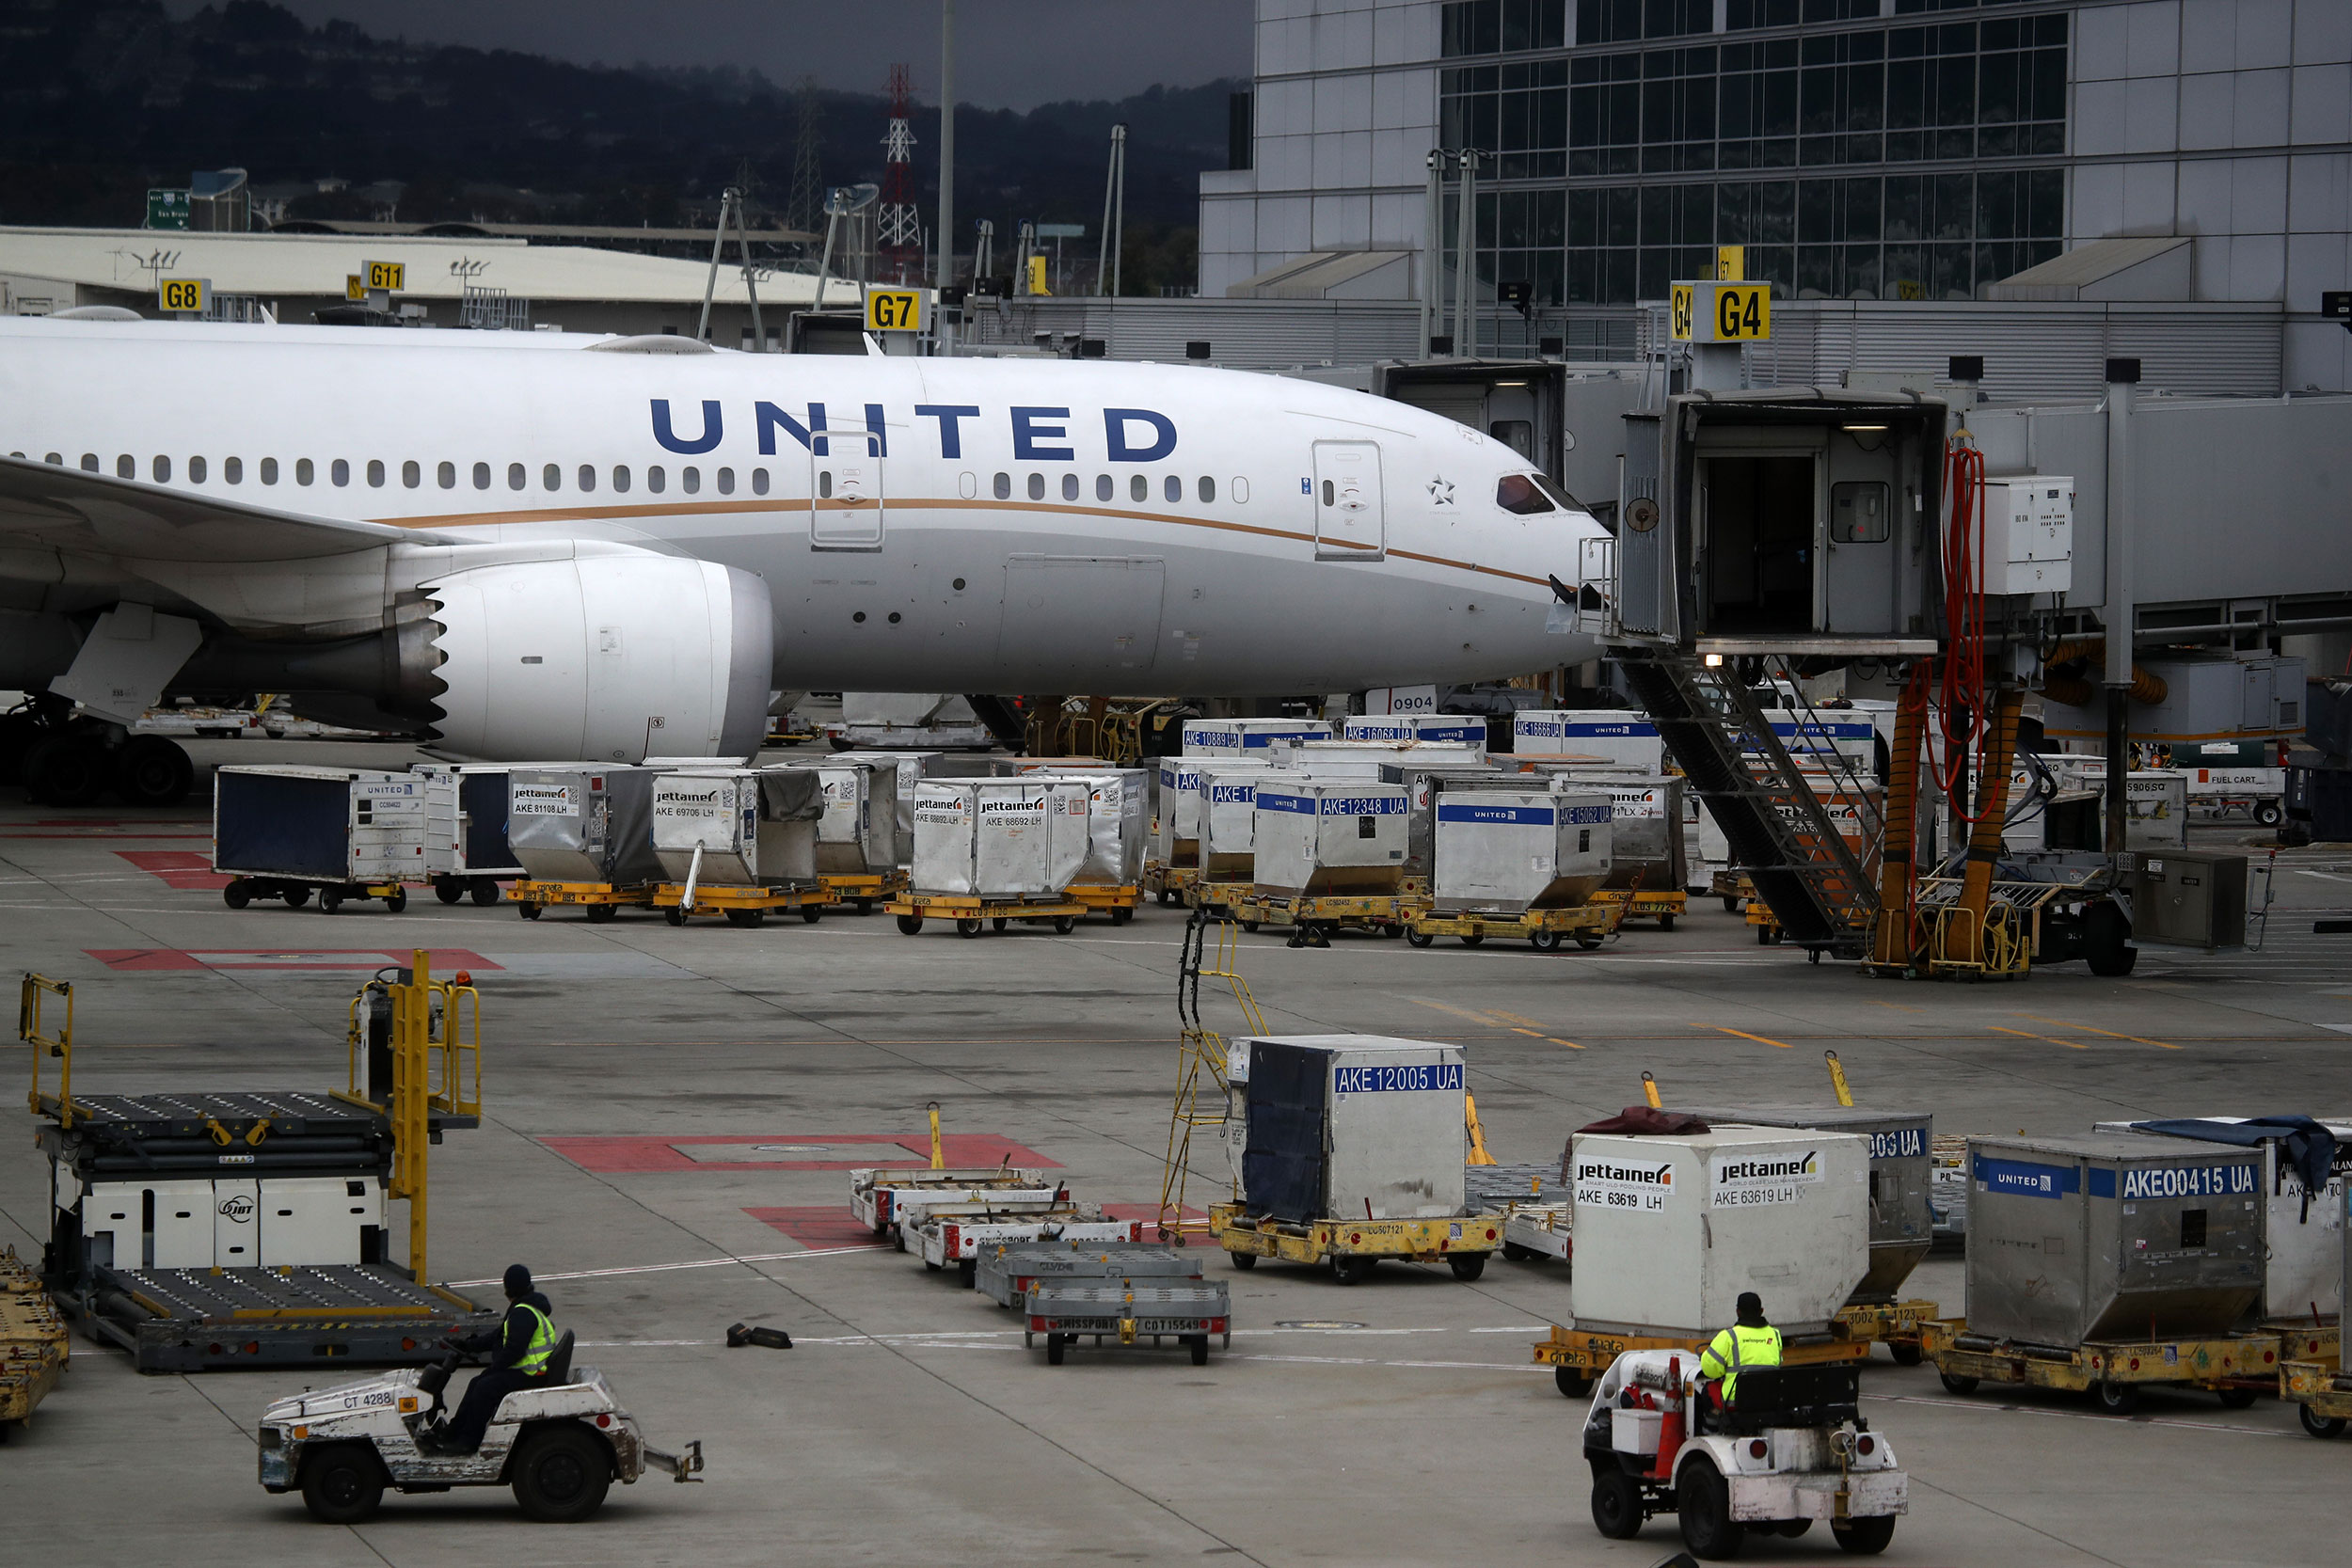 A United Airlines plane sits parked at a gate at San Francisco International Airport on March 6 in California.